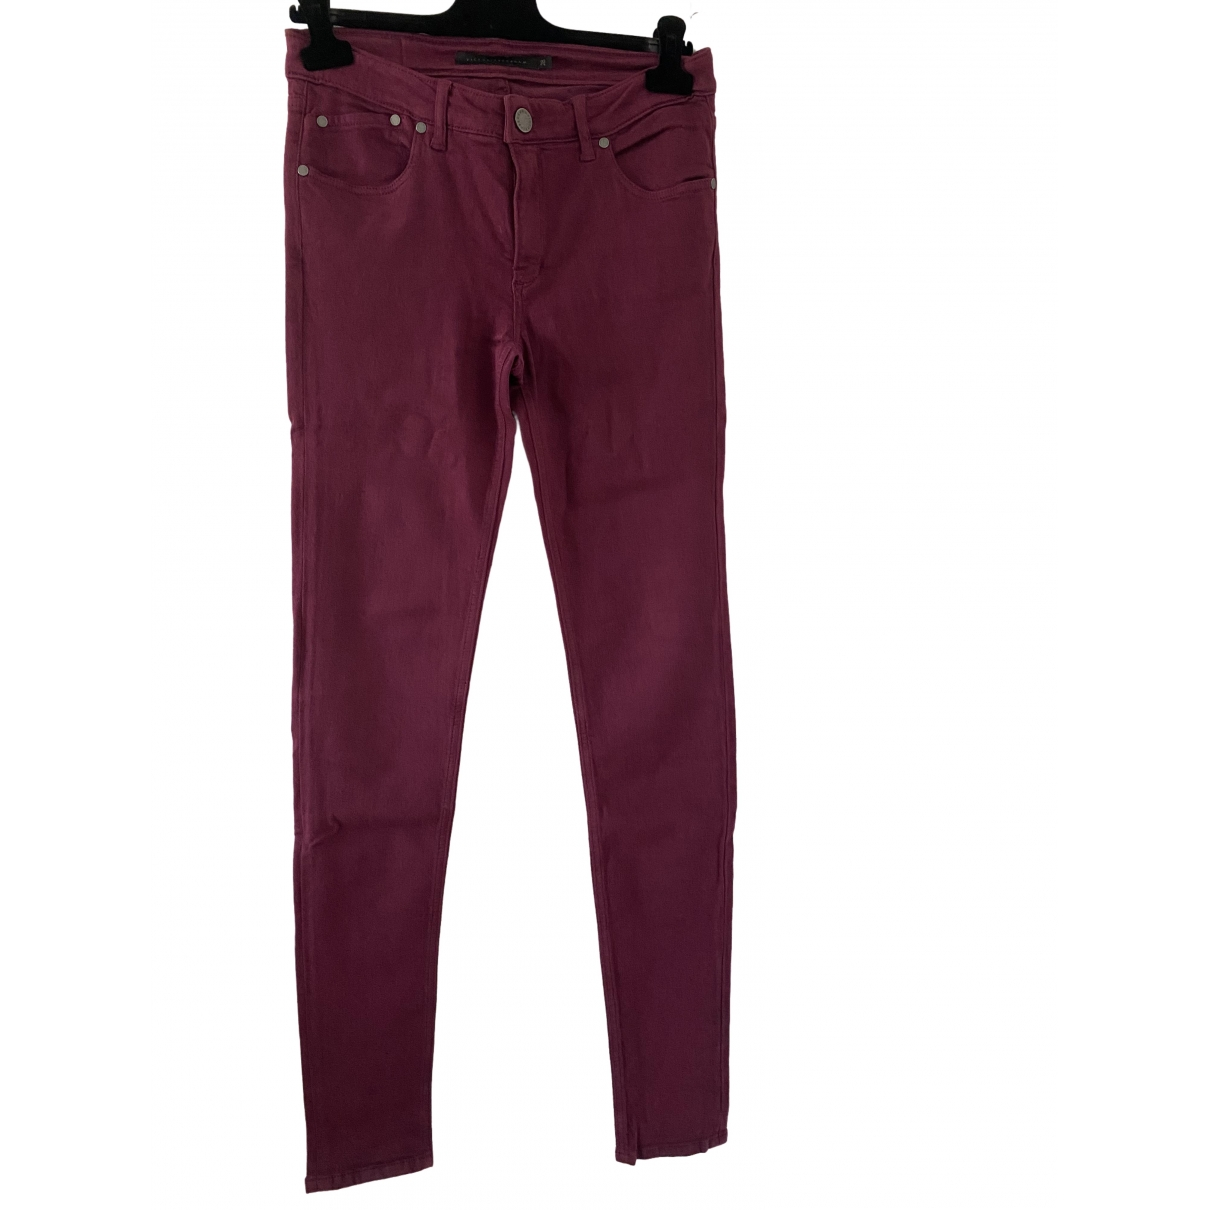 Victoria Beckham \N Burgundy Cotton - elasthane Jeans for Women 28 US